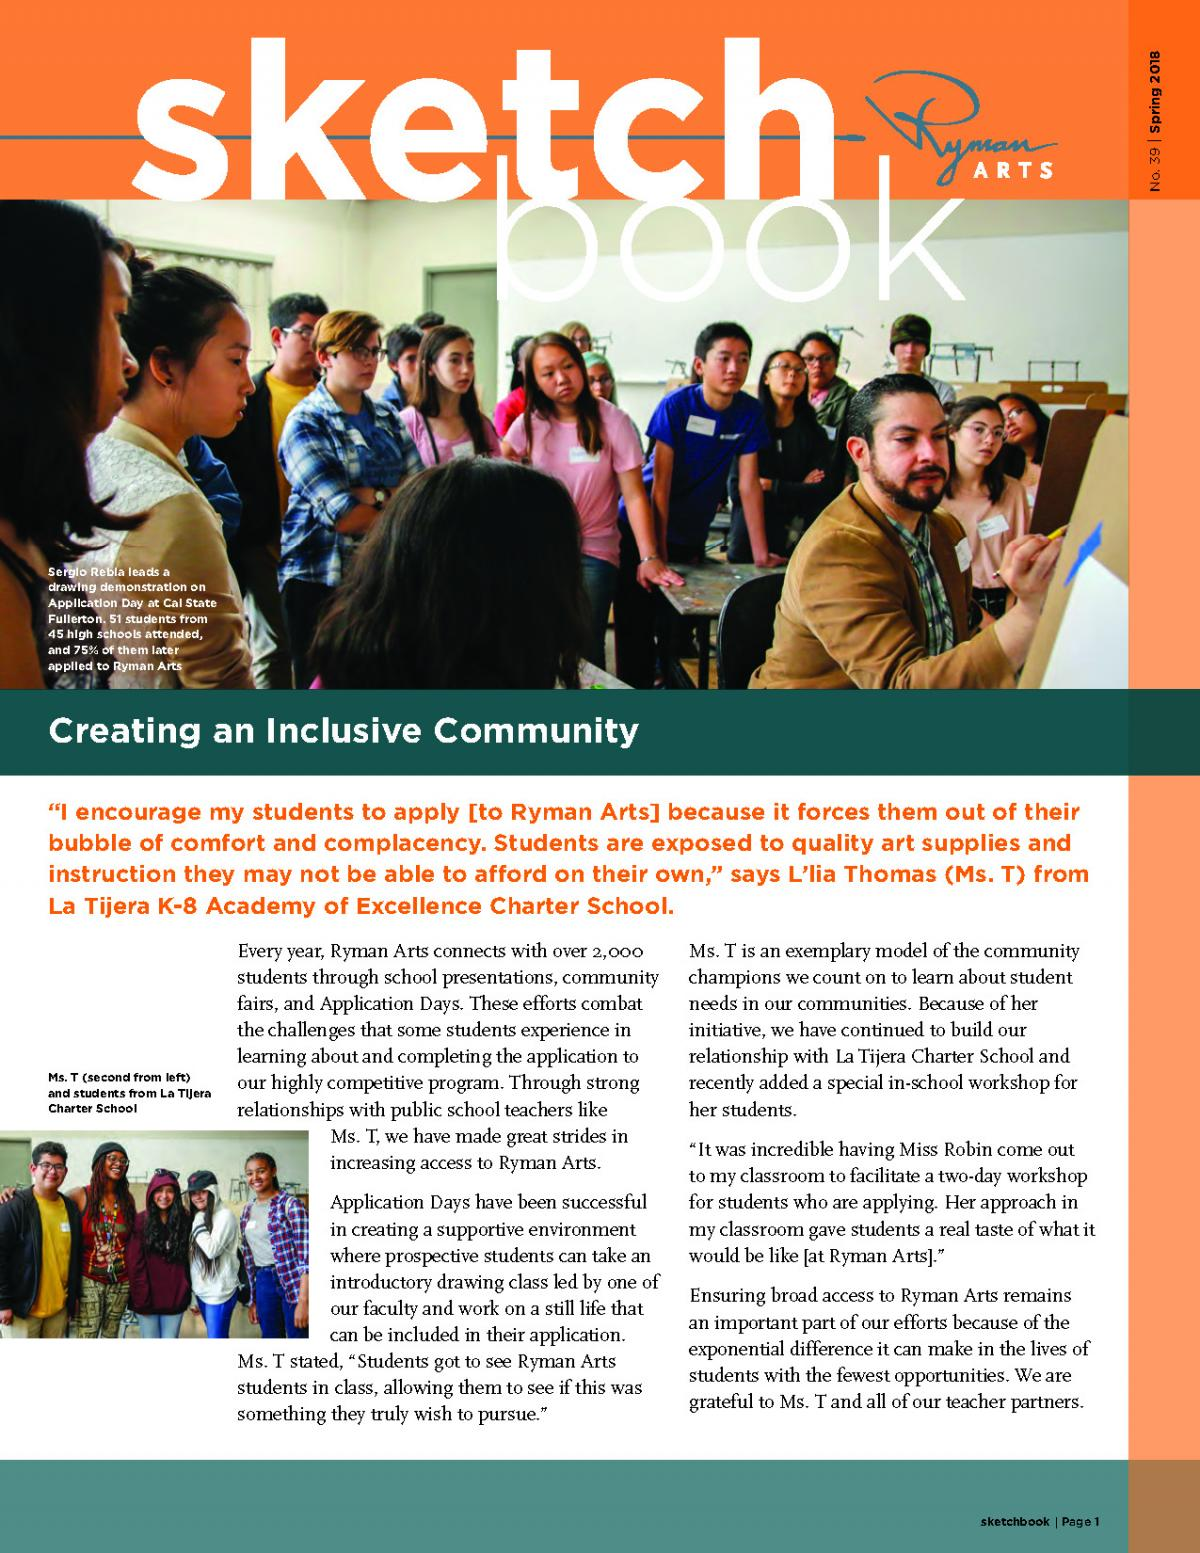 Ryman Arts Sketchbook Number 39, Spring 2018: Creating an Inclusive Community